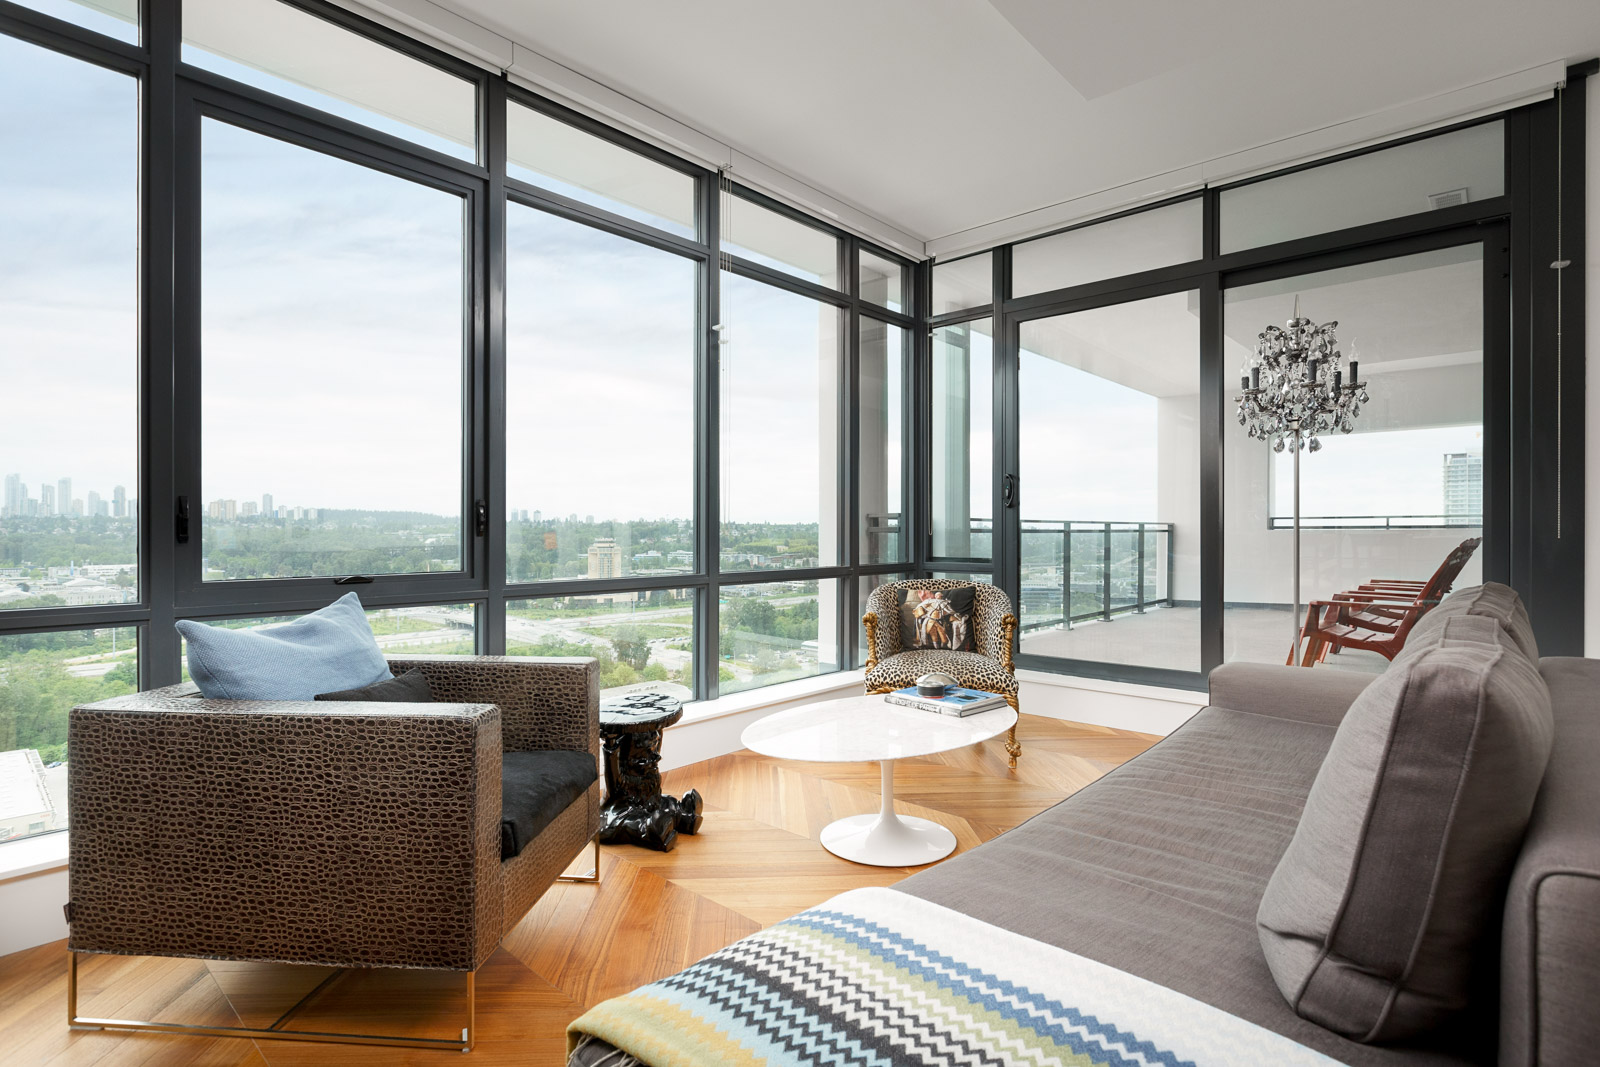 Large floor-to-ceiling windows providing natural sunlight with entertainment space and access to the balcony in a rental condo in Burnaby offered by Birds Nest Properties.